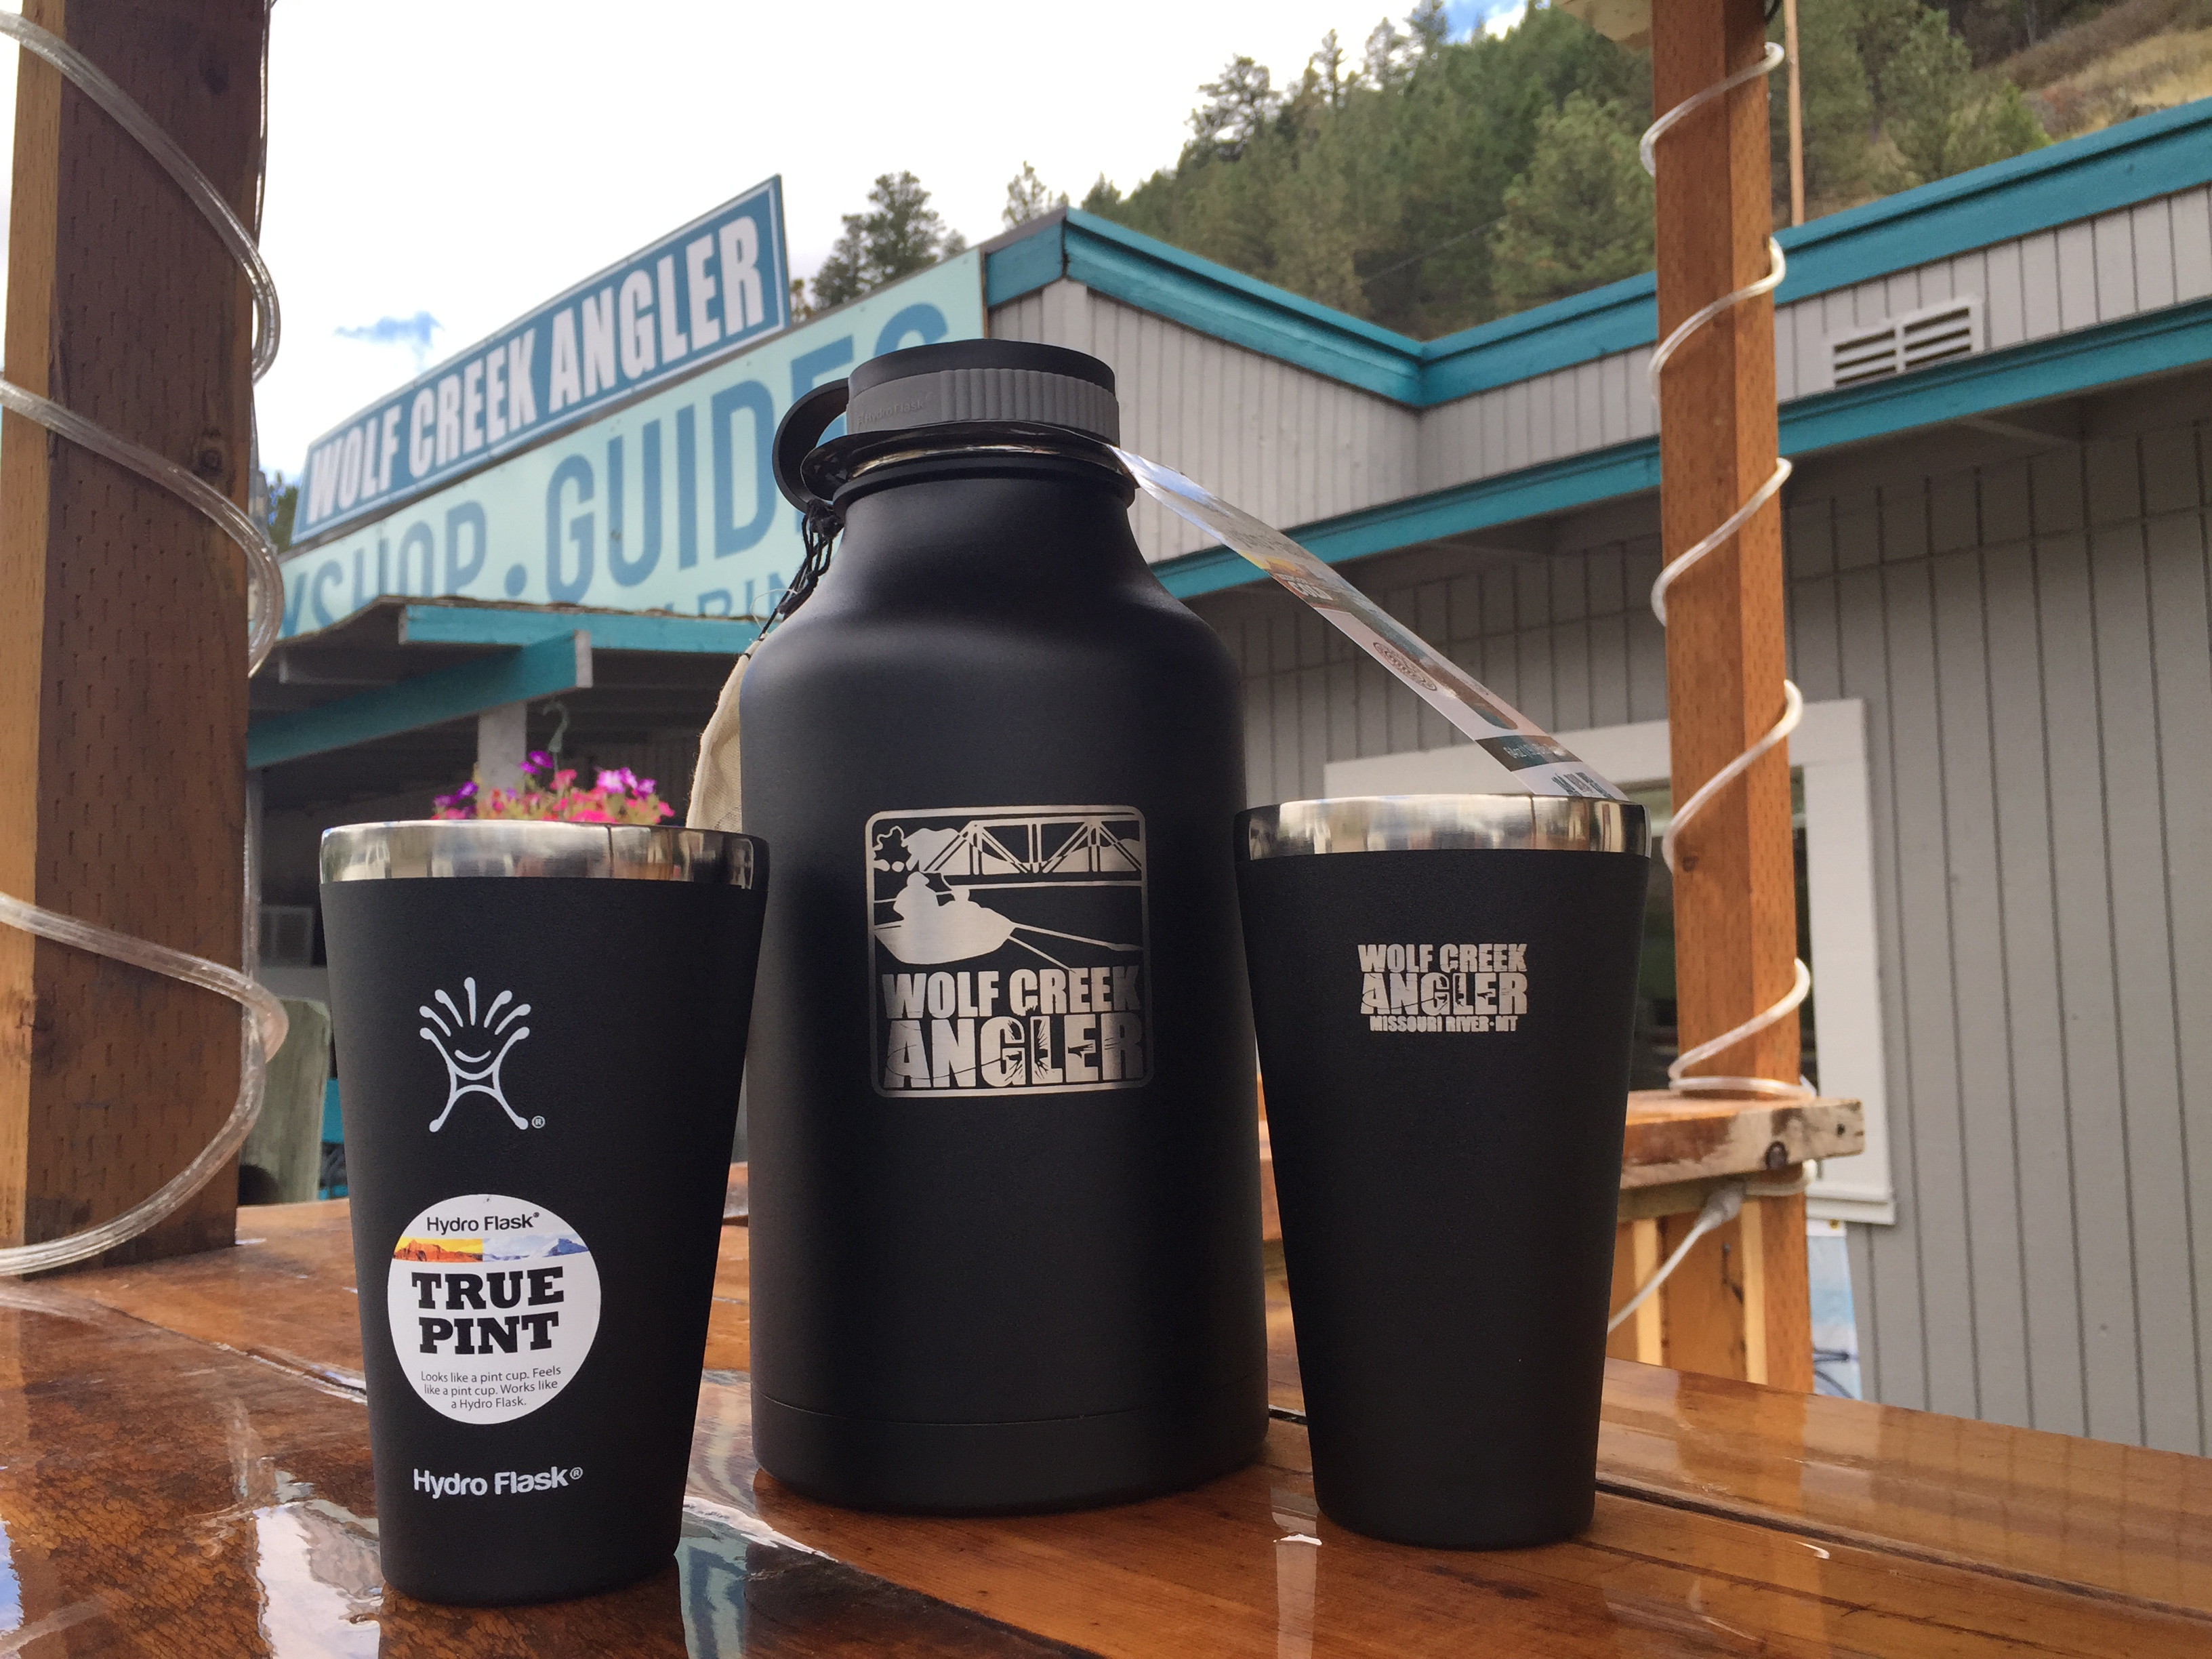 Hydro Flask WCA growler and True Pint glasses could be yours.